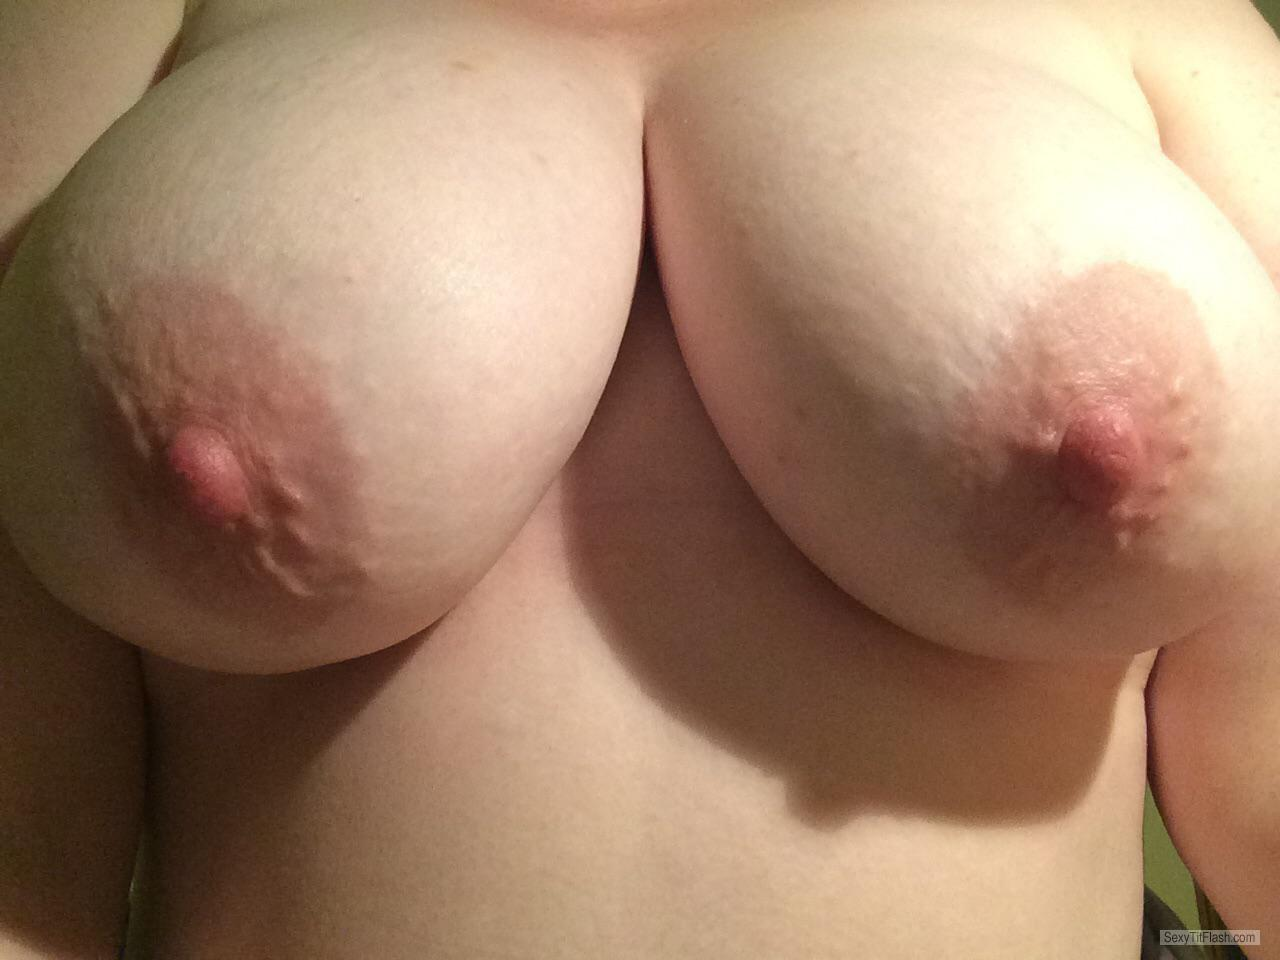 My Big Tits Selfie by Horny_kitty